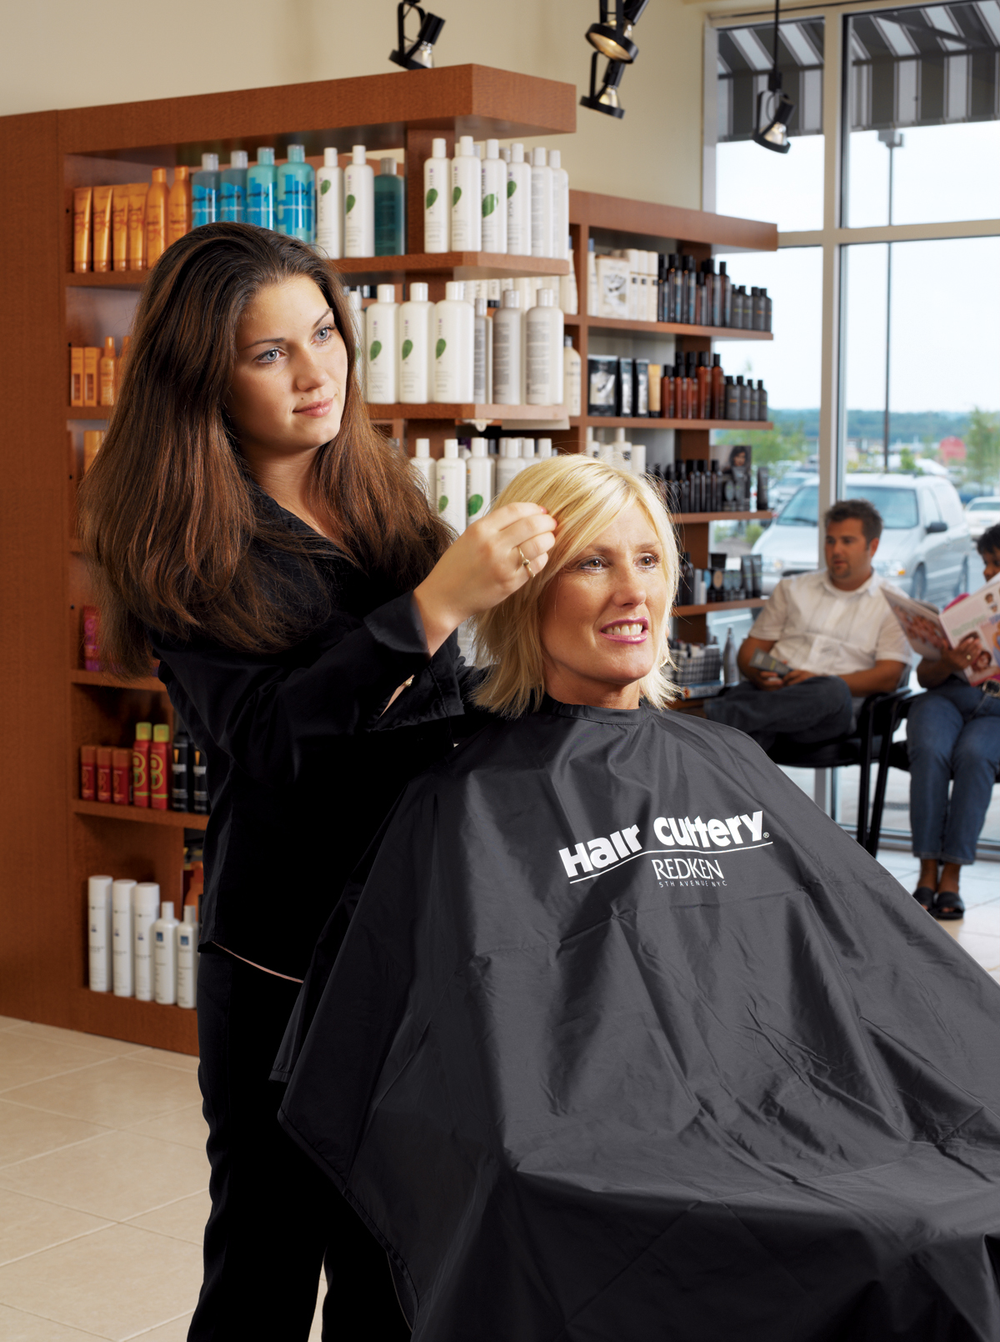 Hair Cuttery says the transition from student to salon professional can be fail-proof thanks to its Path to Prosperity approach to success.